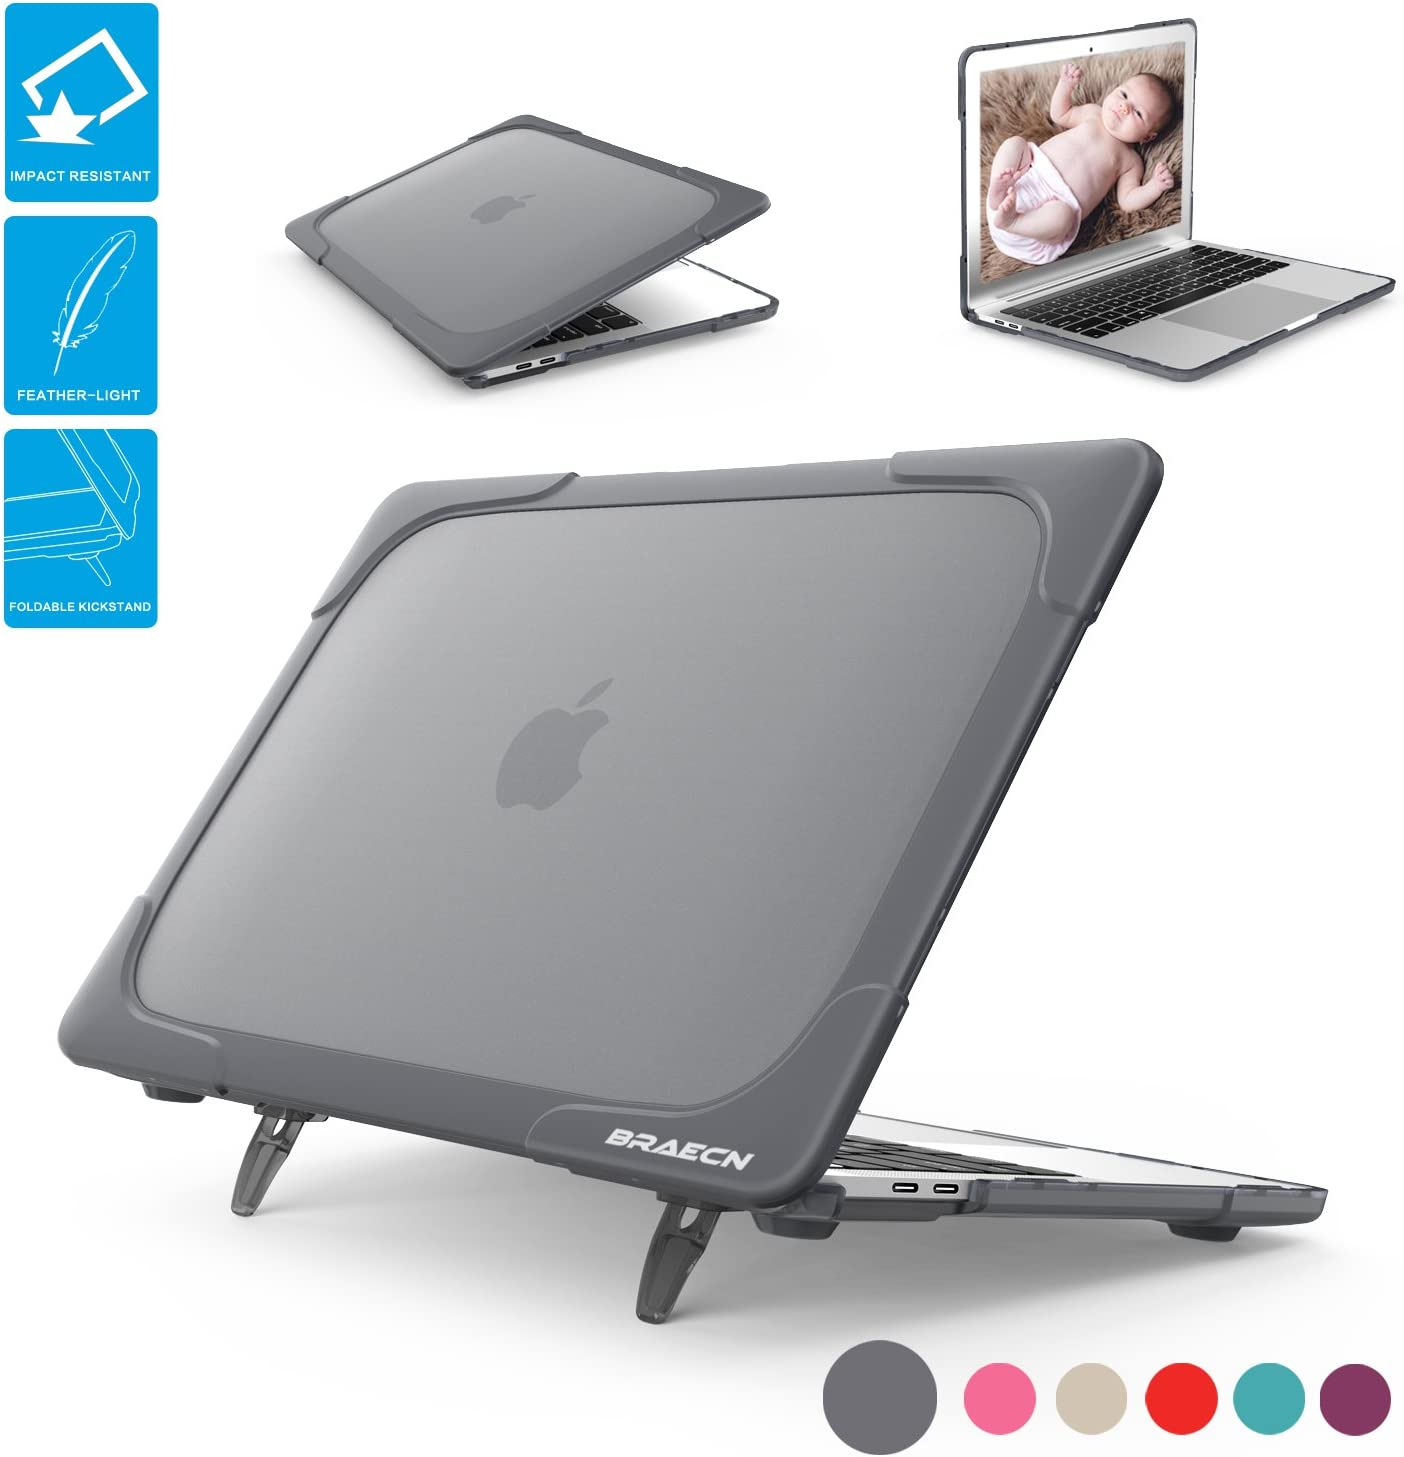 BRAECNstock for Macbook 12 Inch Case [Heavy Duty] Slim Rubberized [Dual Layer] Hard Case Cove with Foldable Kickstand for Retina 12 inch Display Model A1534 (Newest Version 2017/2016/2015)-Gray